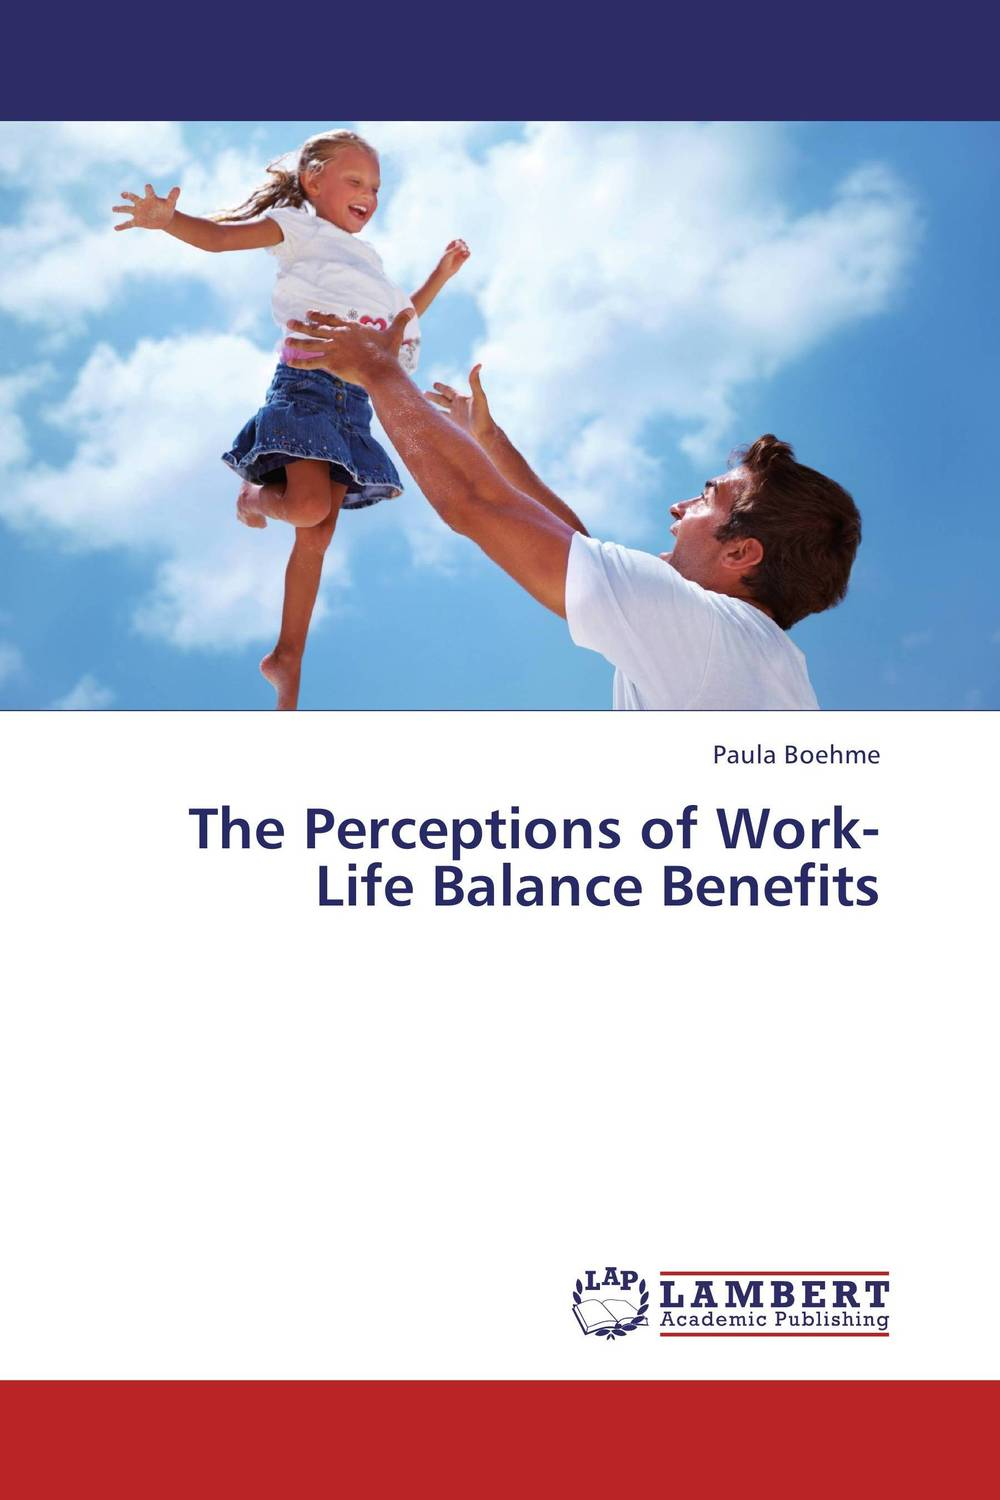 The Perceptions of Work-Life Balance Benefits paula boehme the perceptions of work life balance benefits